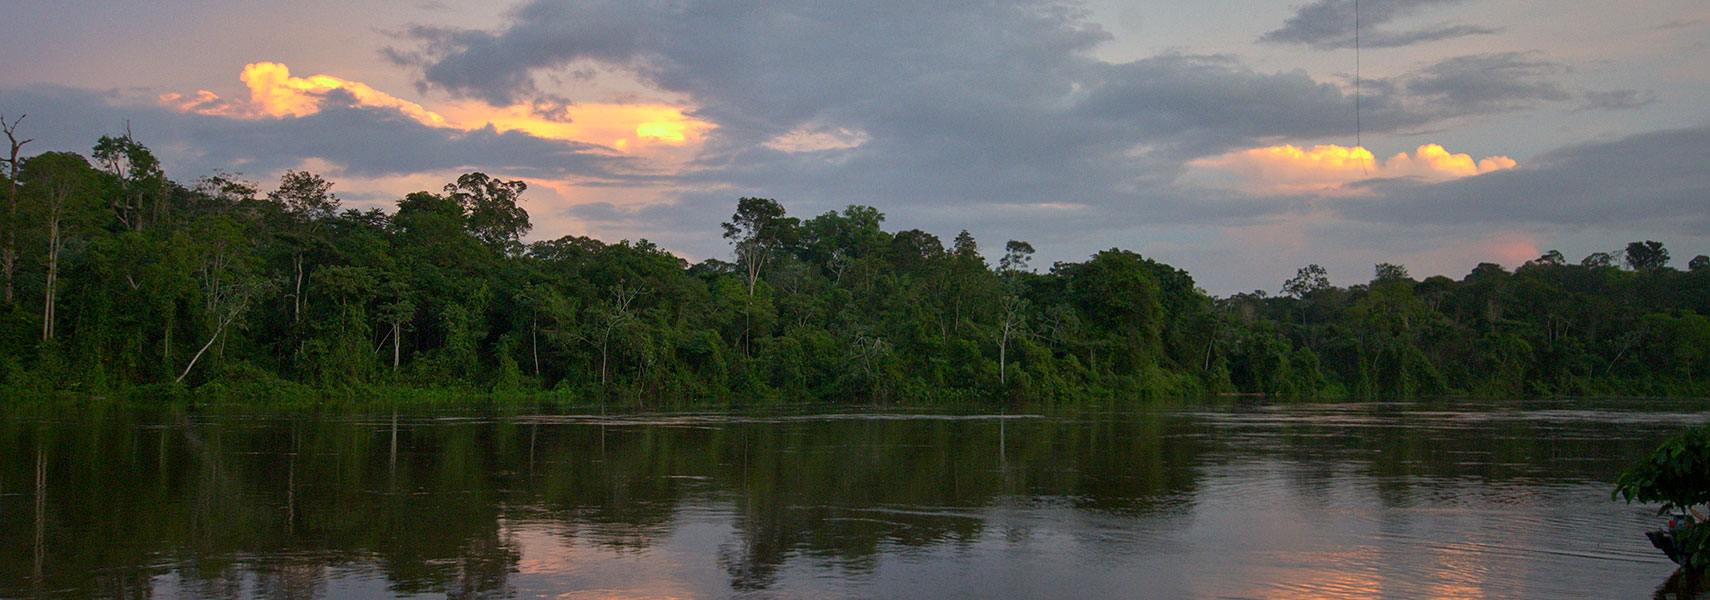 Tapanahony River, near Palumeu airport, Sipaliwini District, Suriname